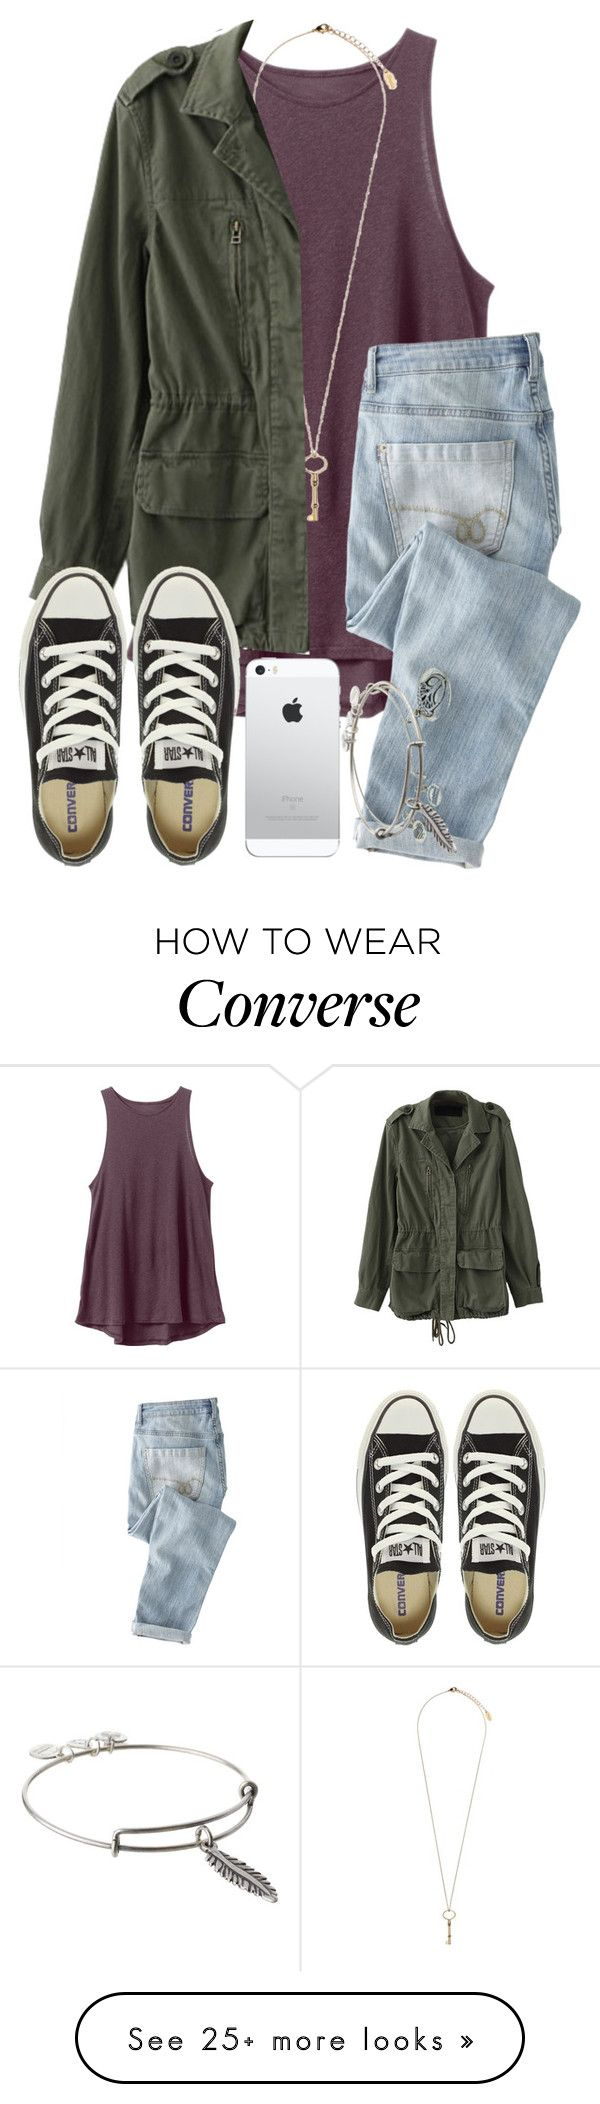 """""""Me: Gets Welcomed To Fandom. Gets Trapped. Me RnHelp. Fangirl Gone Crazy."""" by twaayy on Polyvore featuring RVCA, Topshop, Wrap, Converse and Alex and Ani"""